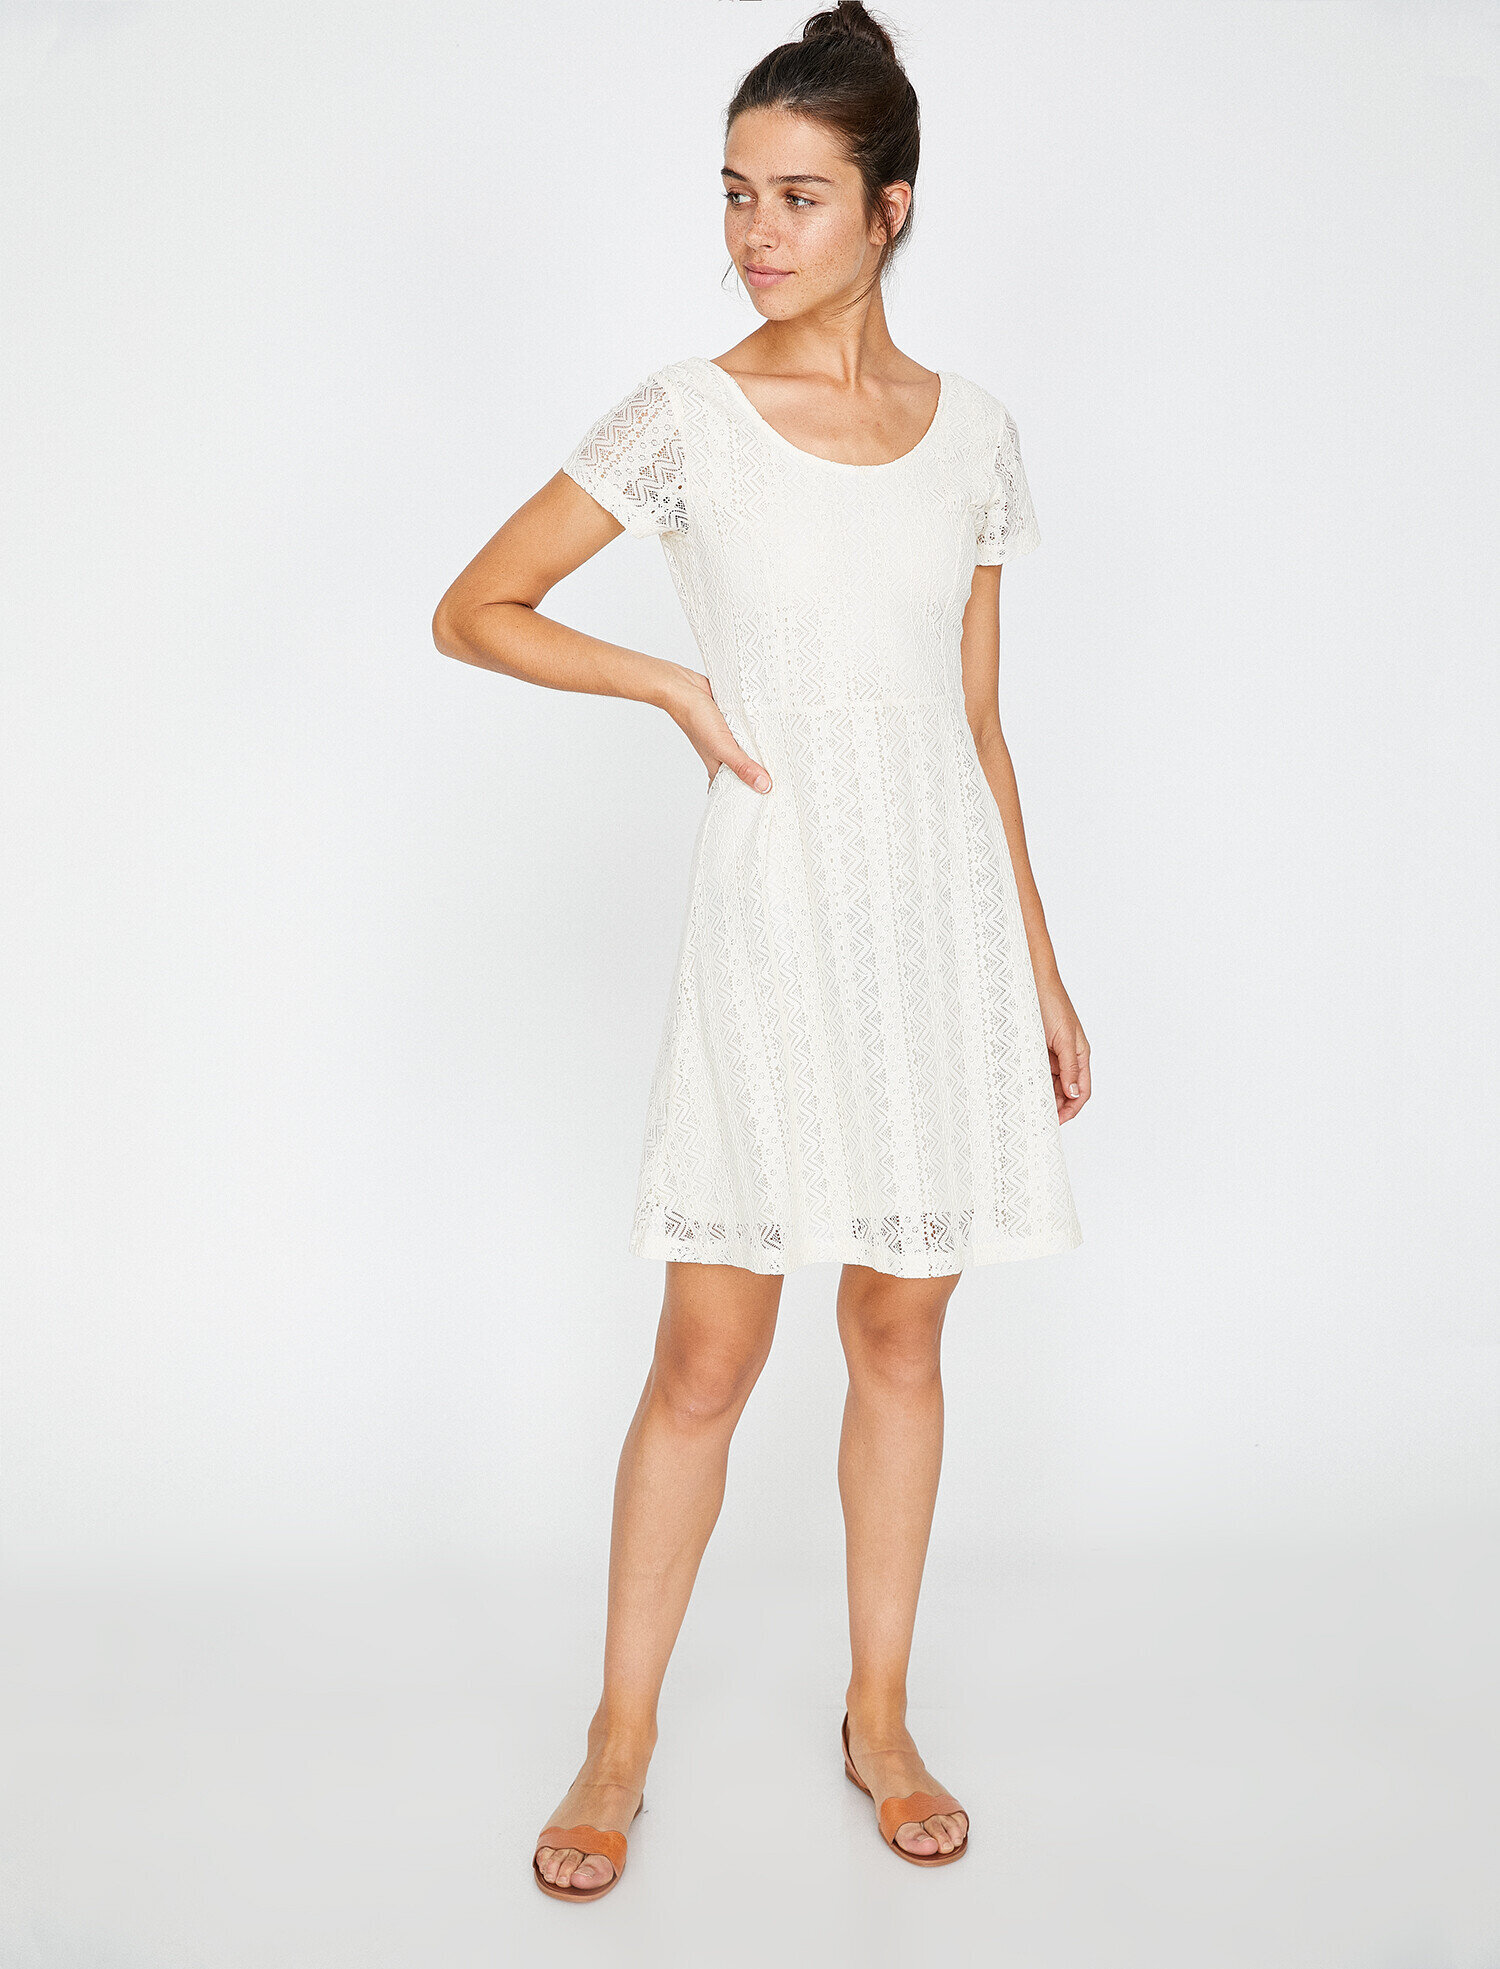 9719a37c14 White Women Lace Detailed Dress 8YAL81061JK001